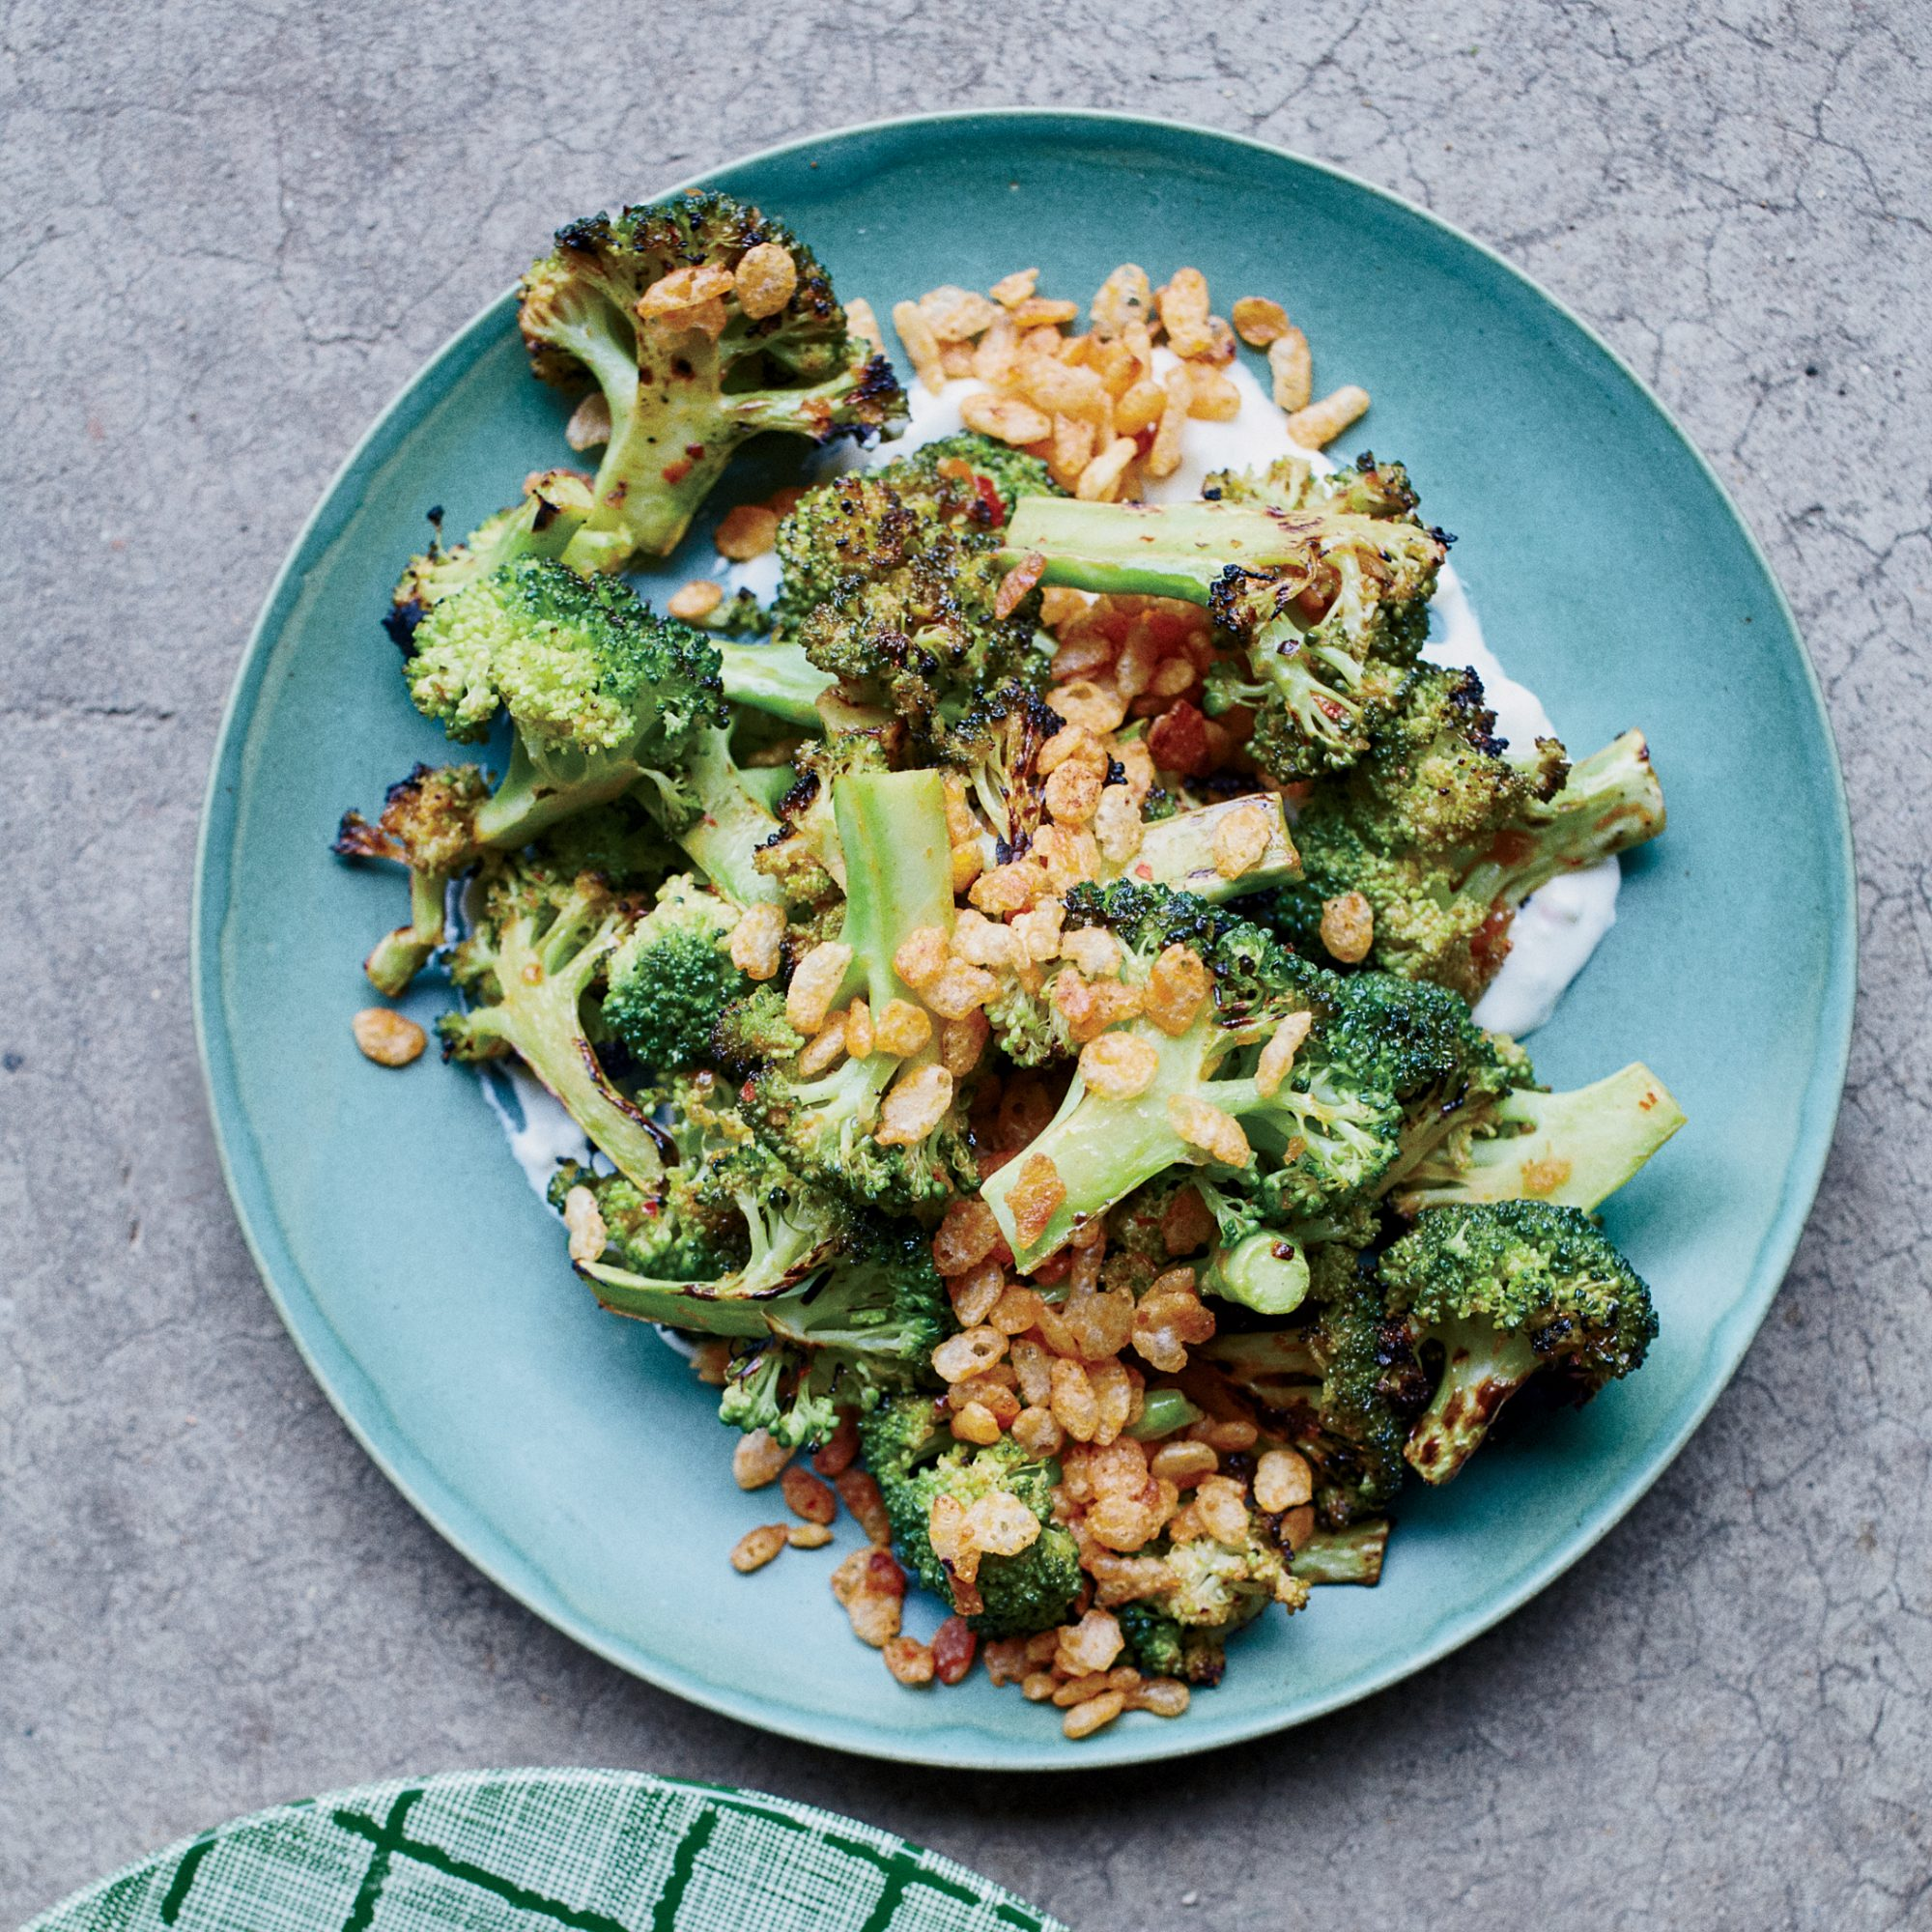 Charred Broccoli with Blue Cheese Dressing and Spiced Crispies